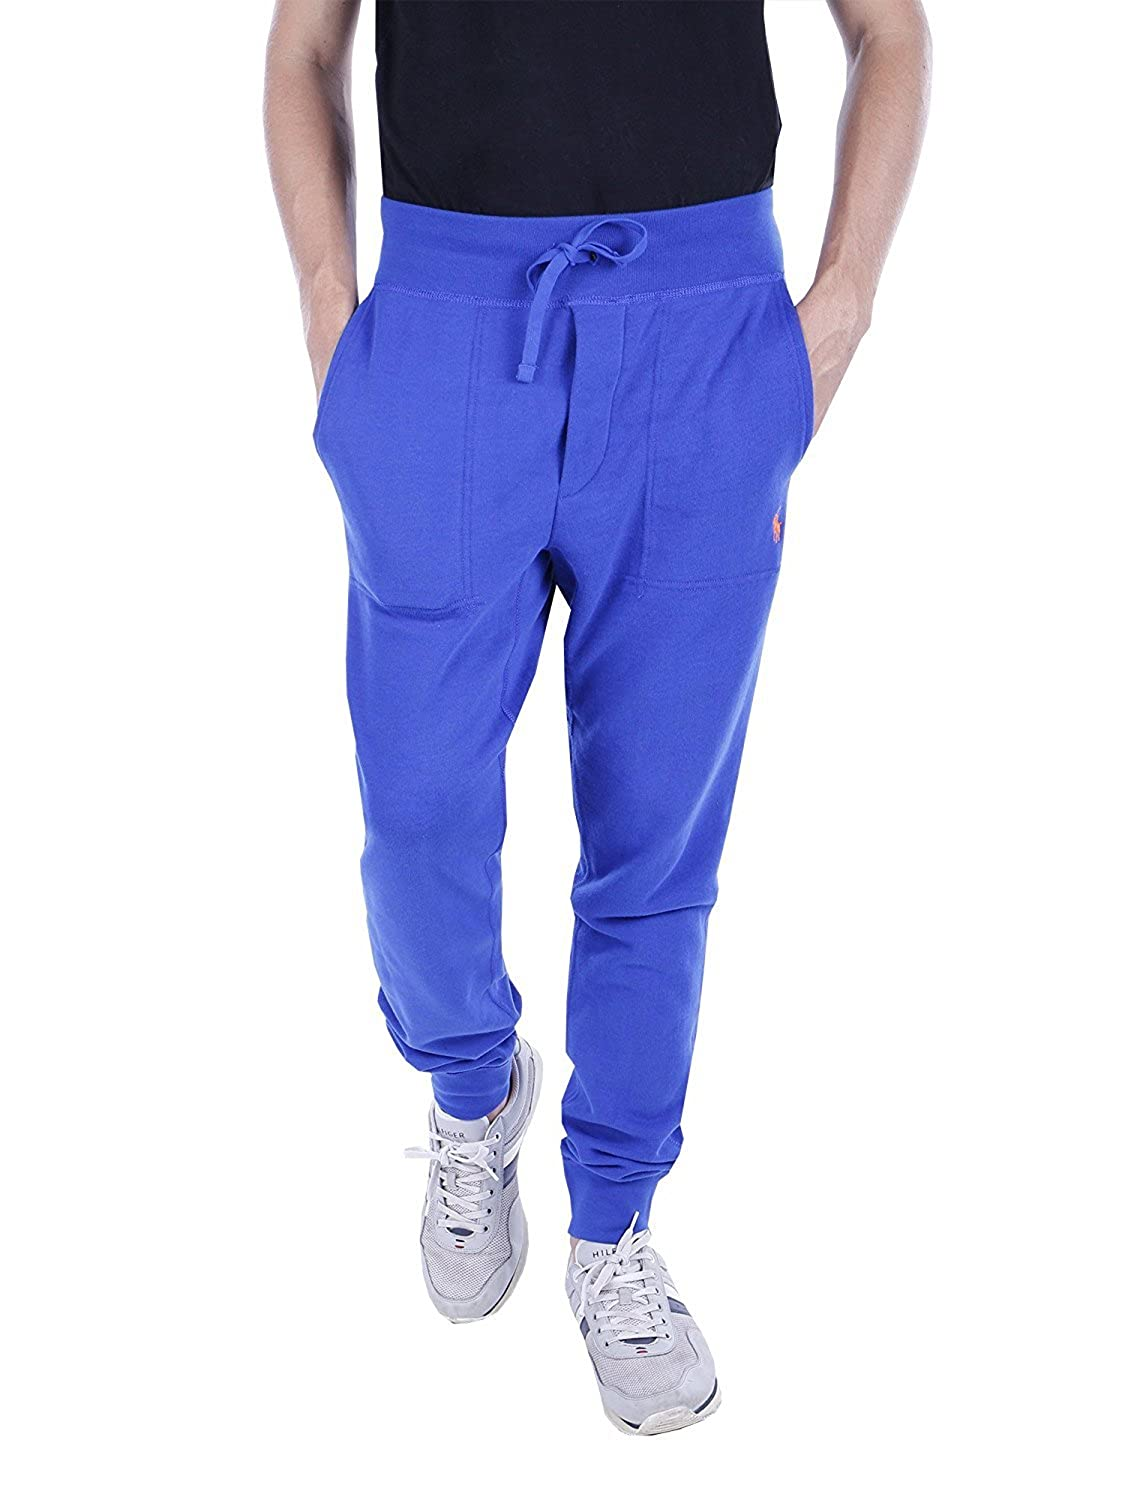 Ralph Lauren Polo Mens Pocket Cotton Pants Royal S